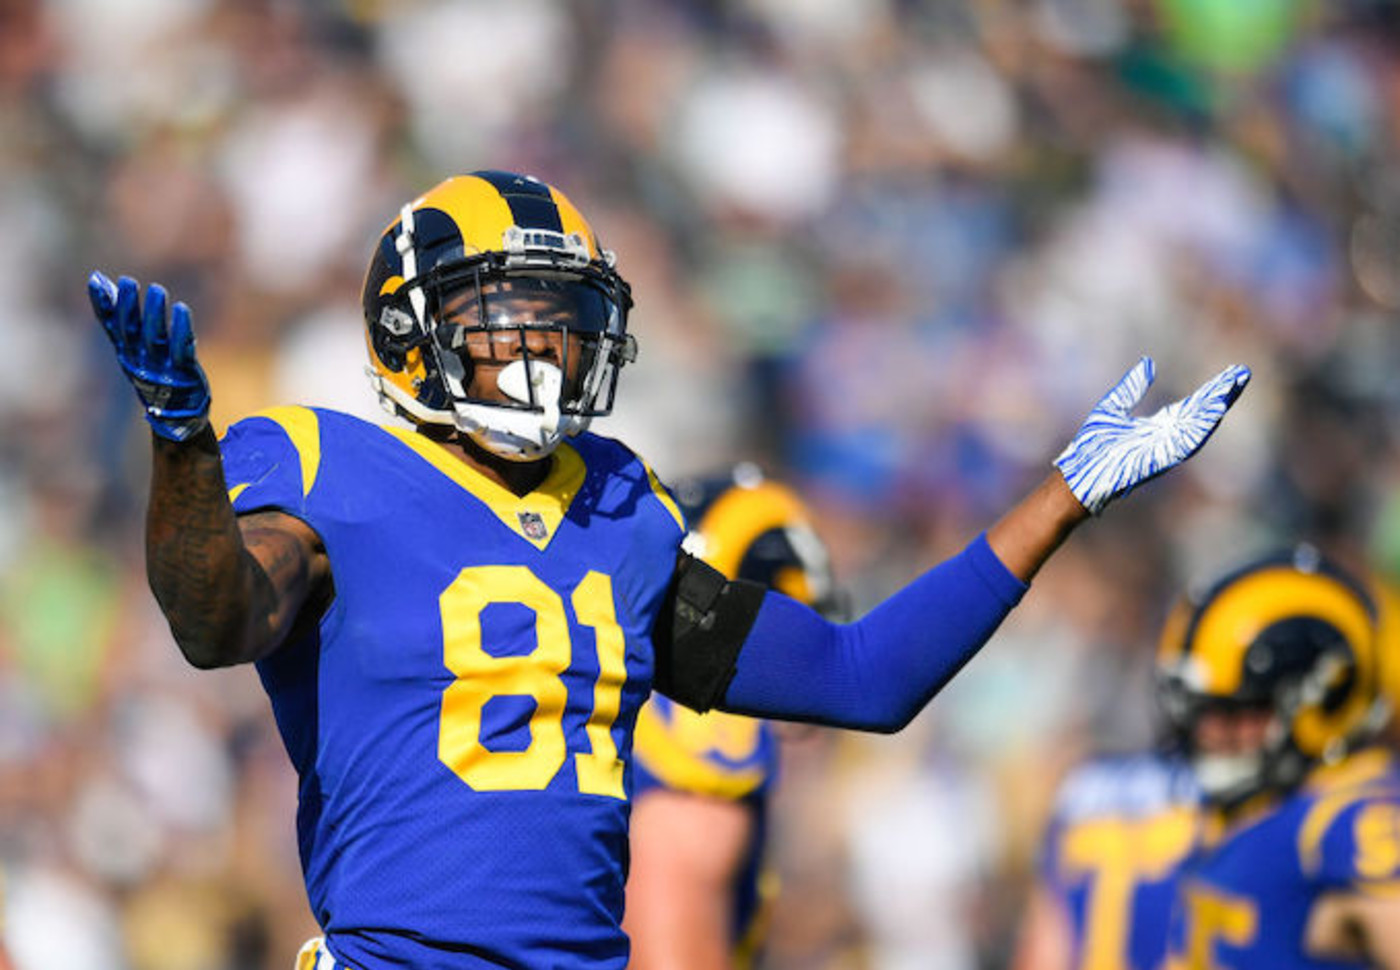 This is a picture of the Rams.